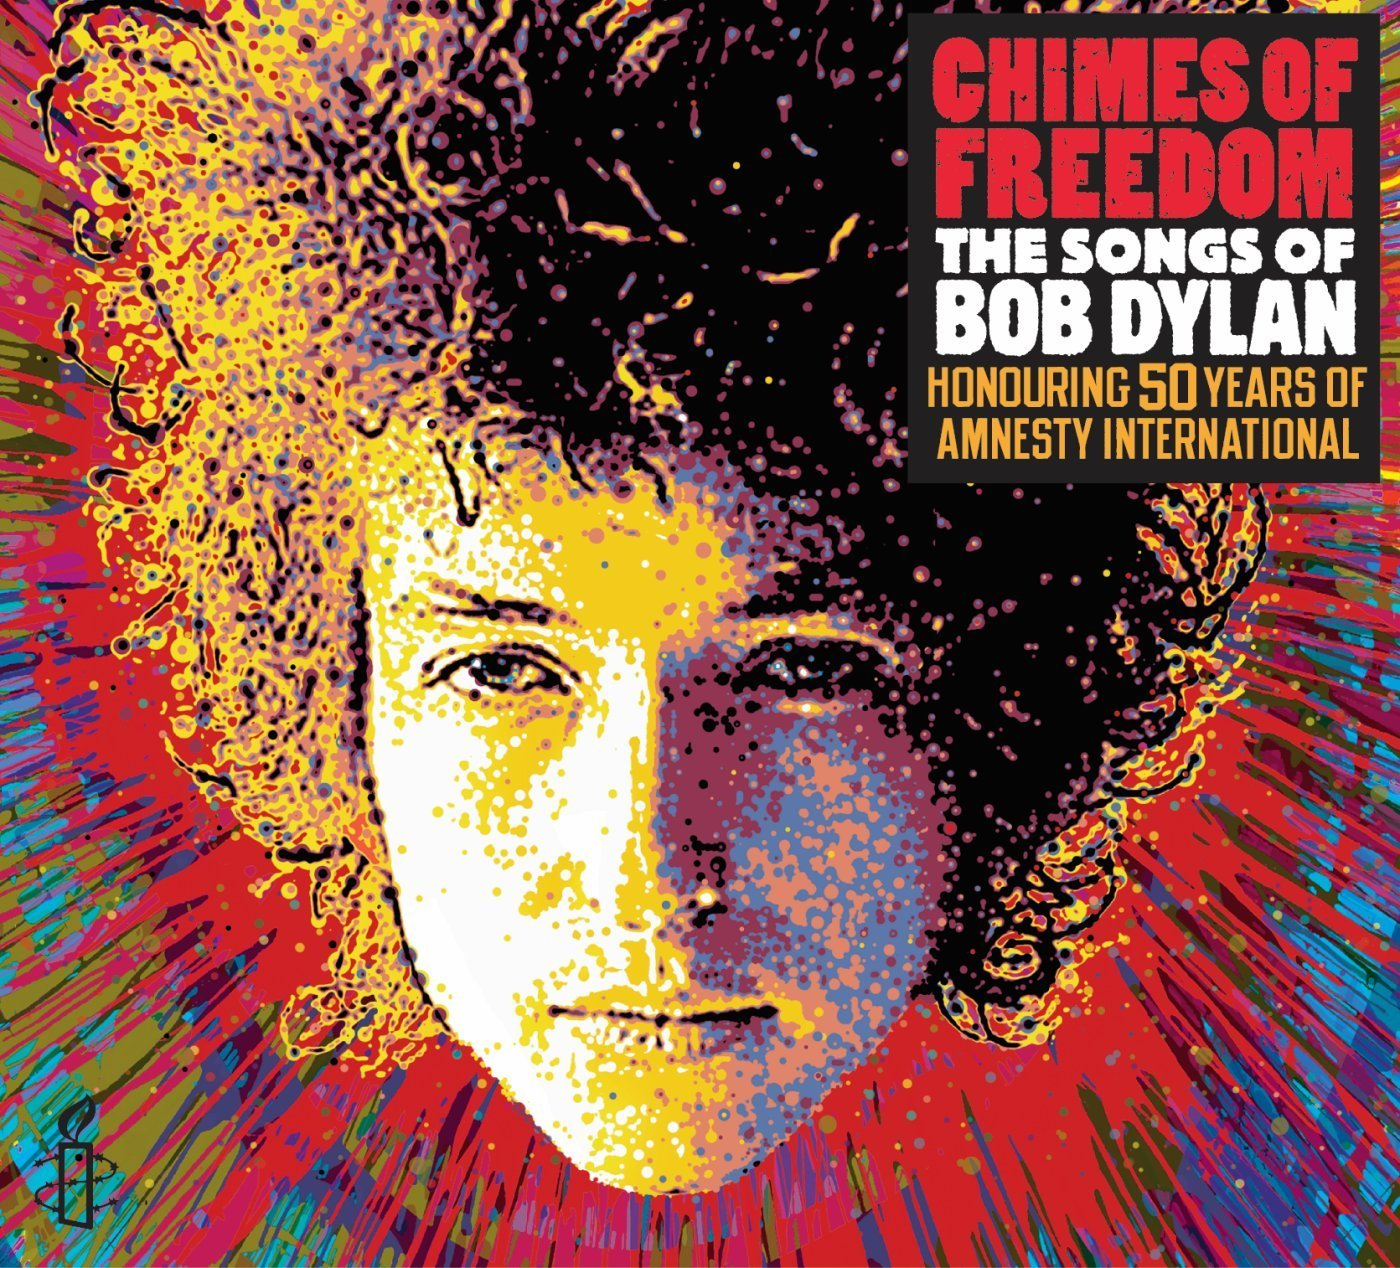 Chimes of freedom - The songs of Bob Dylan (2012)